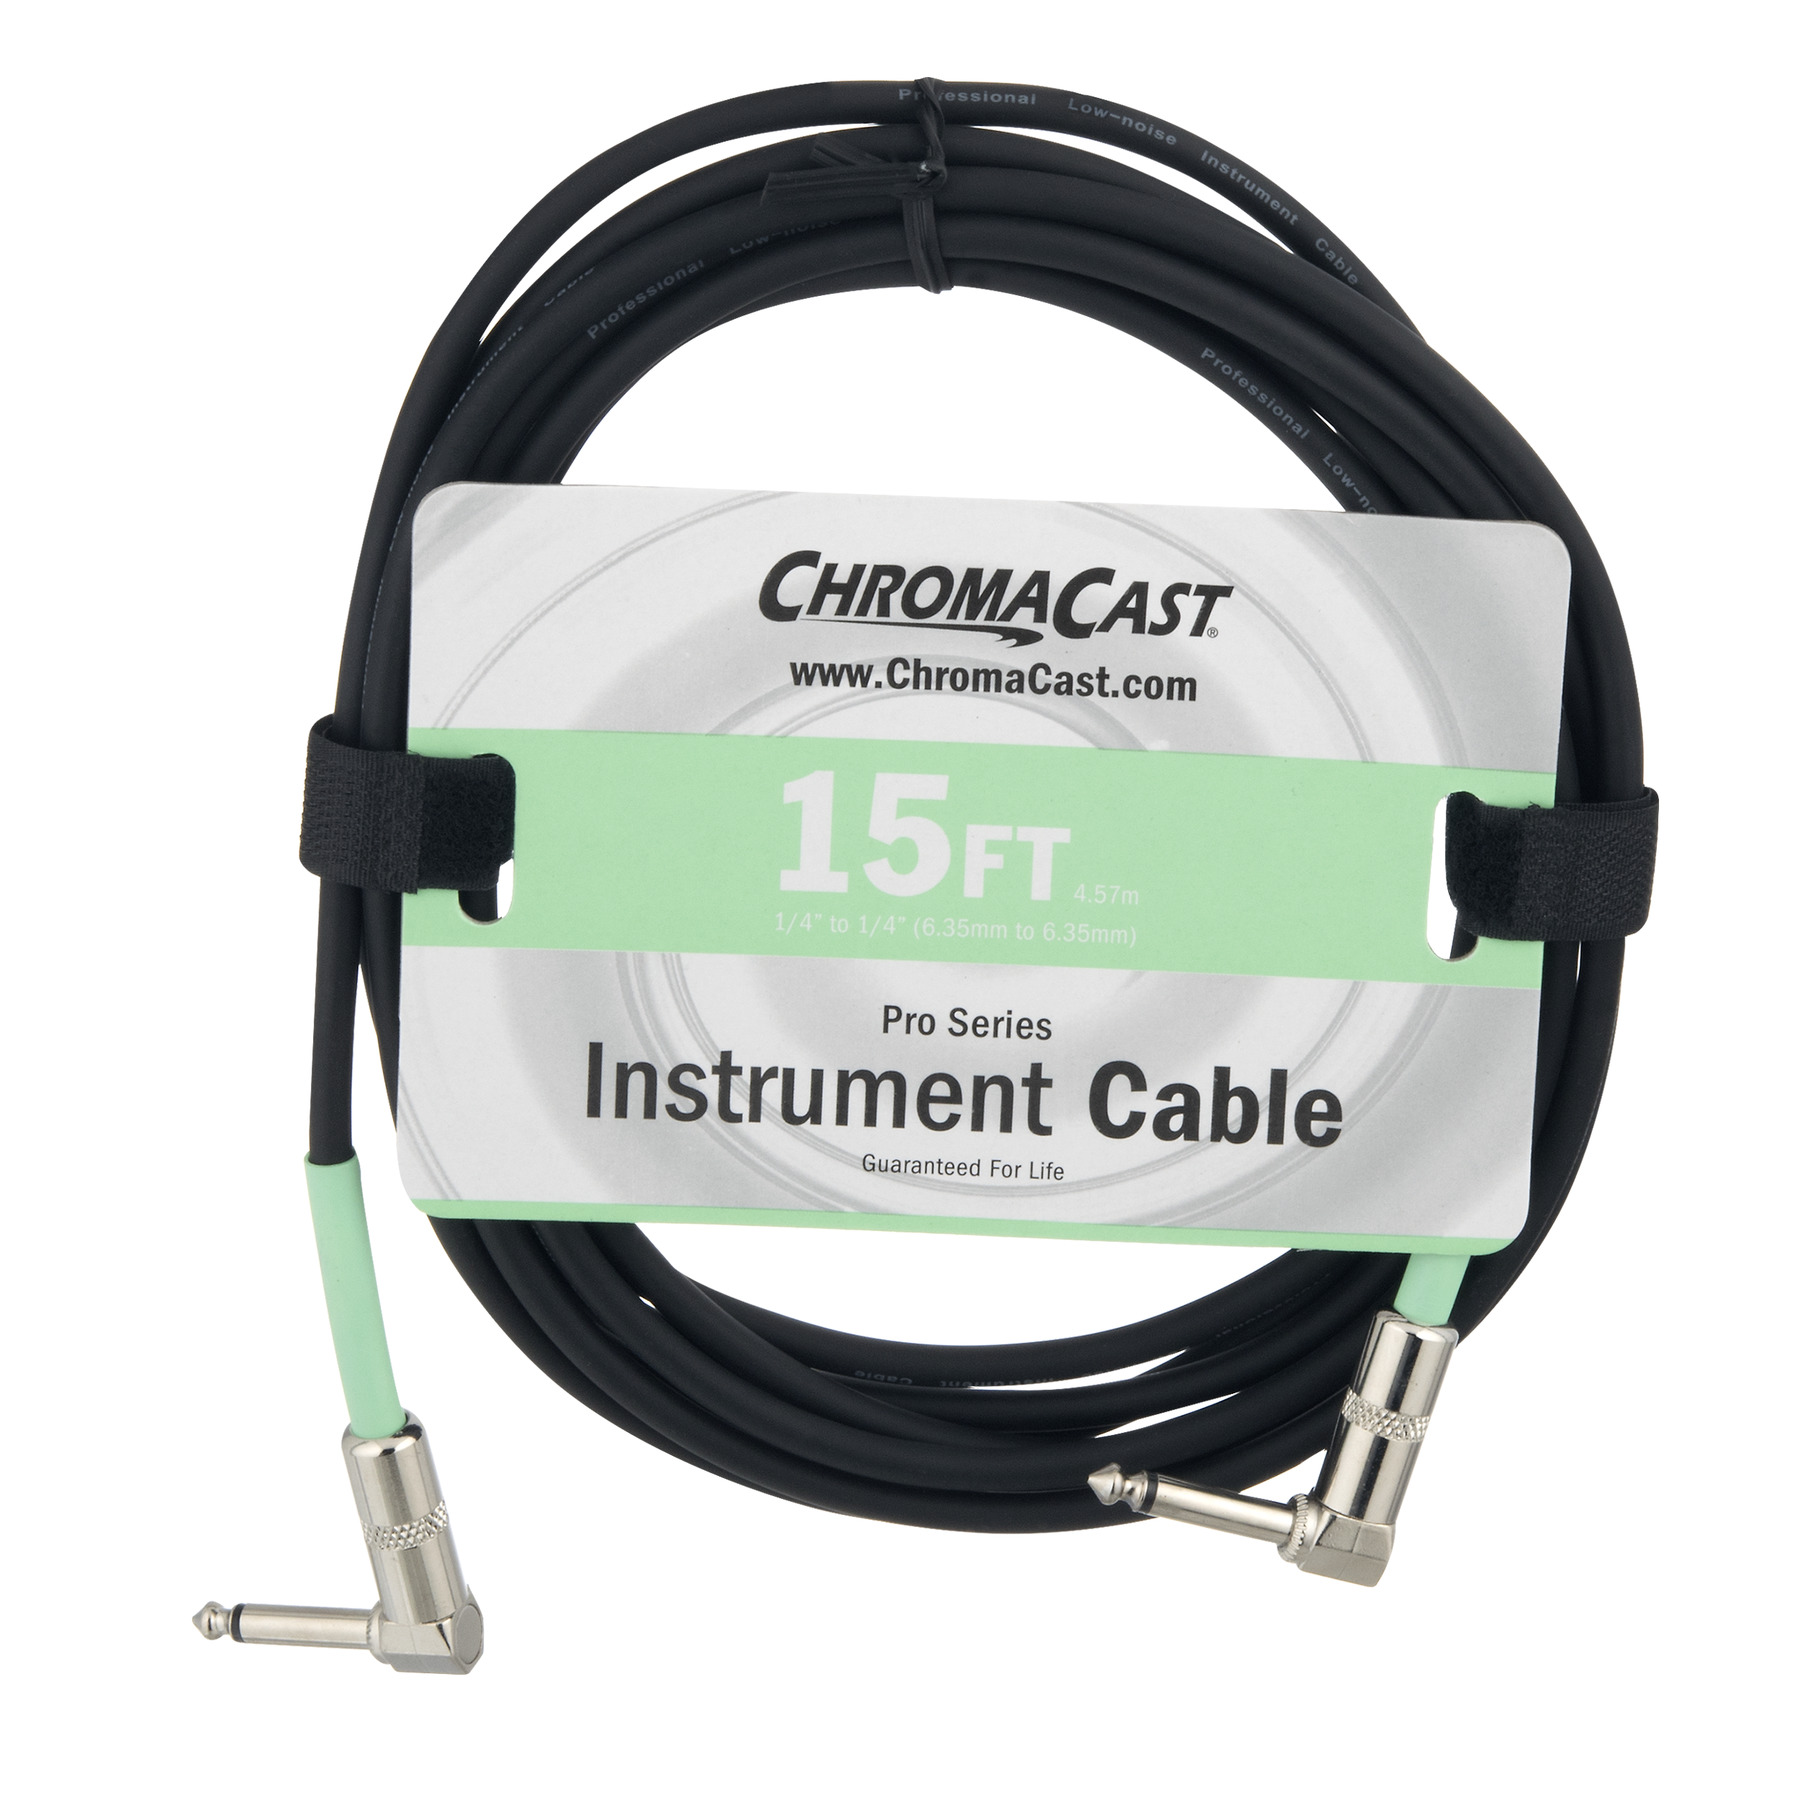 Chroma Cast Pro Series Instrument Cable 15 FT, 1.0 CT